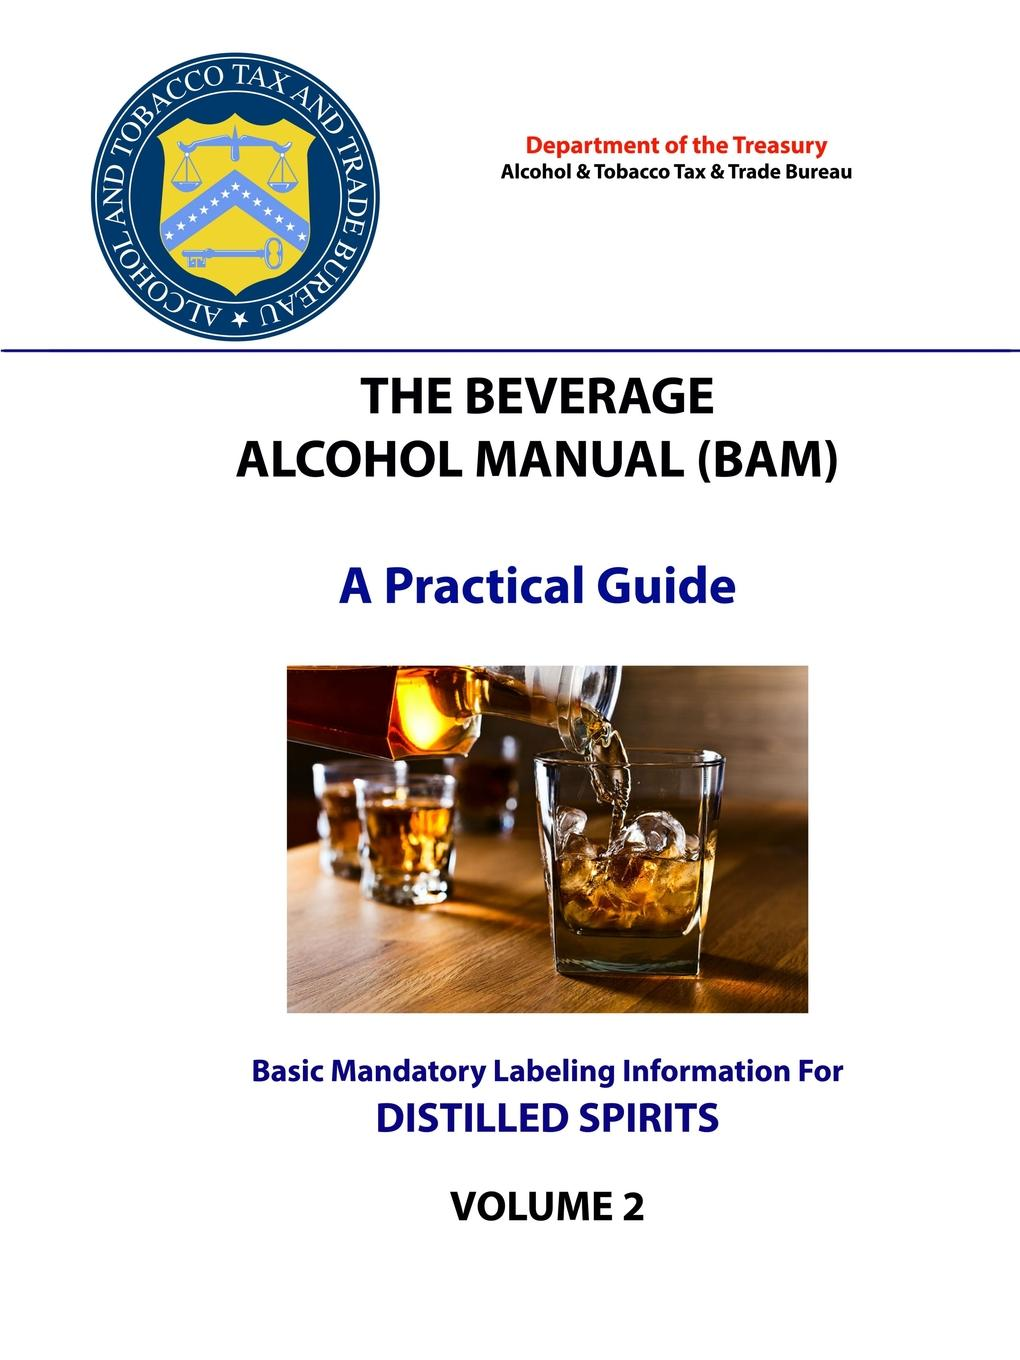 Department of the Treasury The Beverage Alcohol Manual (BAM) - A Practical Guide - Basic Mandatory Labeling Information for Distilled Spirits michael johnson spirits of ethasia the silent stag talamh